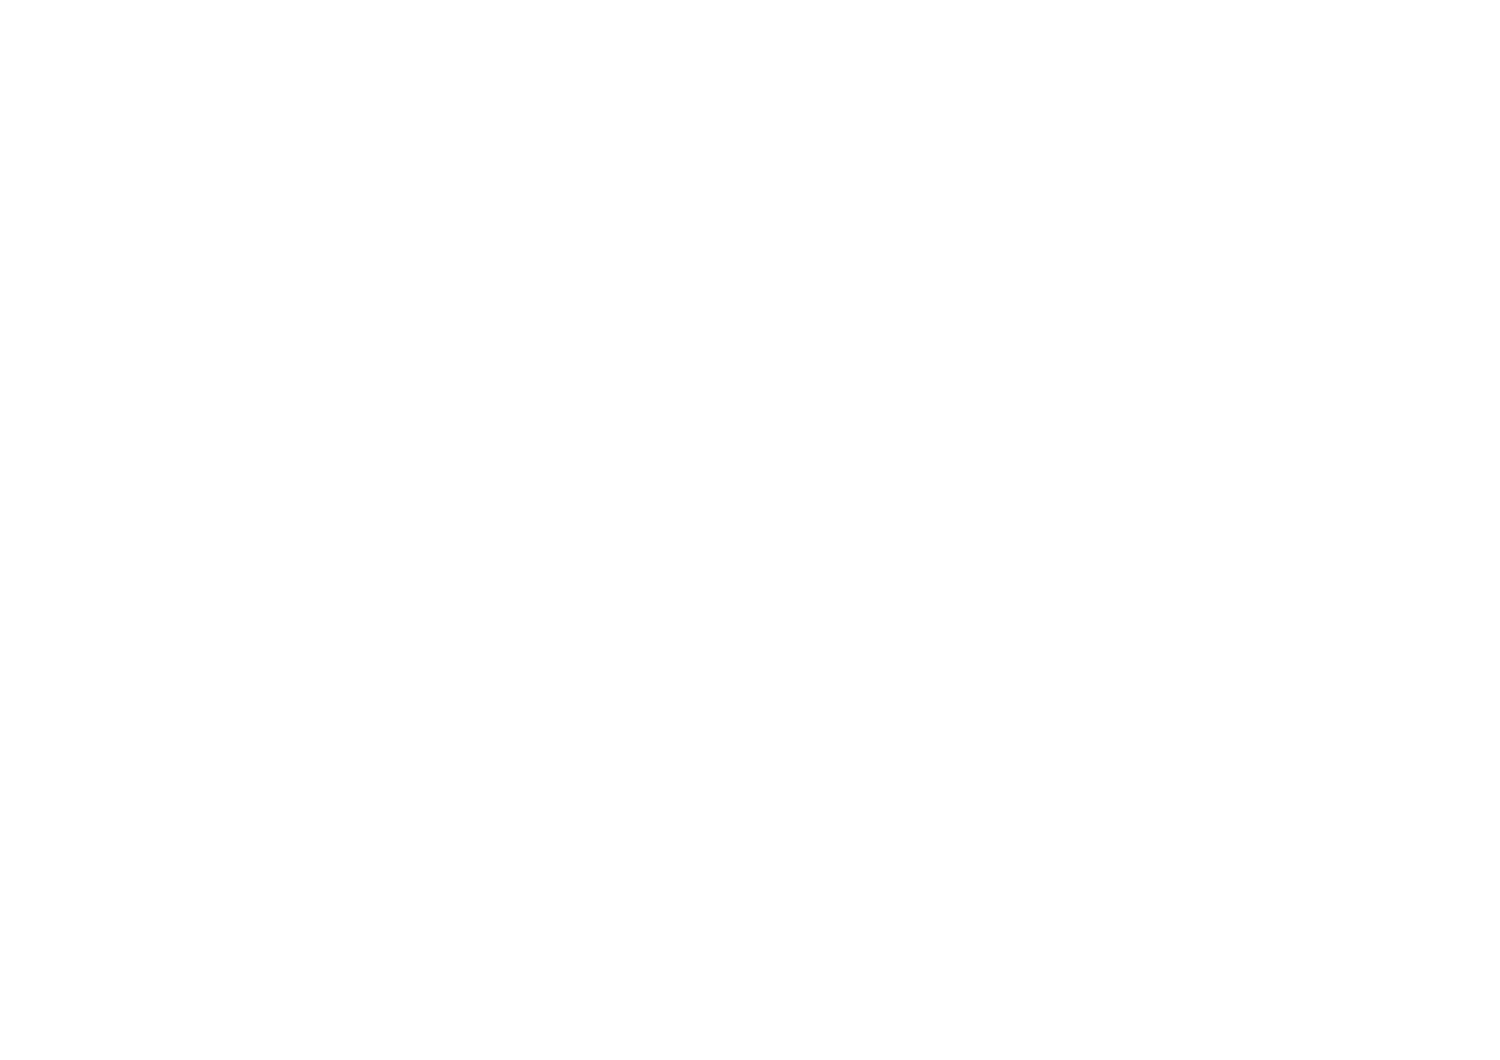 Fuora Dance Project